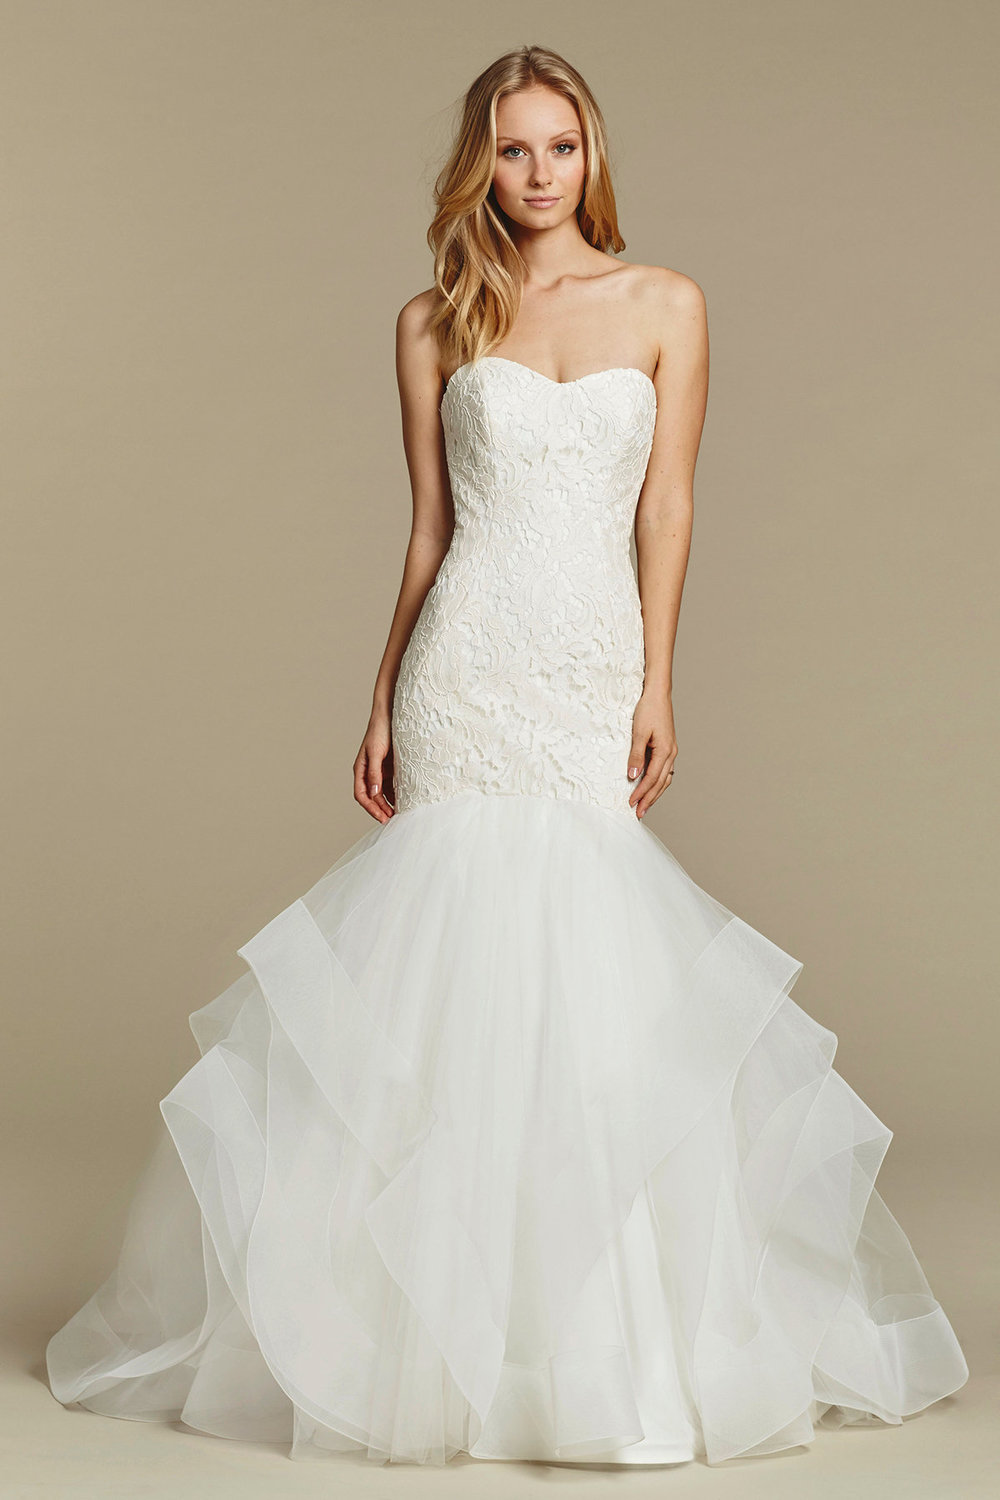 blush-hayley-paige-bridal-lace-fit-to-flare-strapless-sweetheart-elongated-tiered-tulle-horsehair-trim-1603_x2.jpg